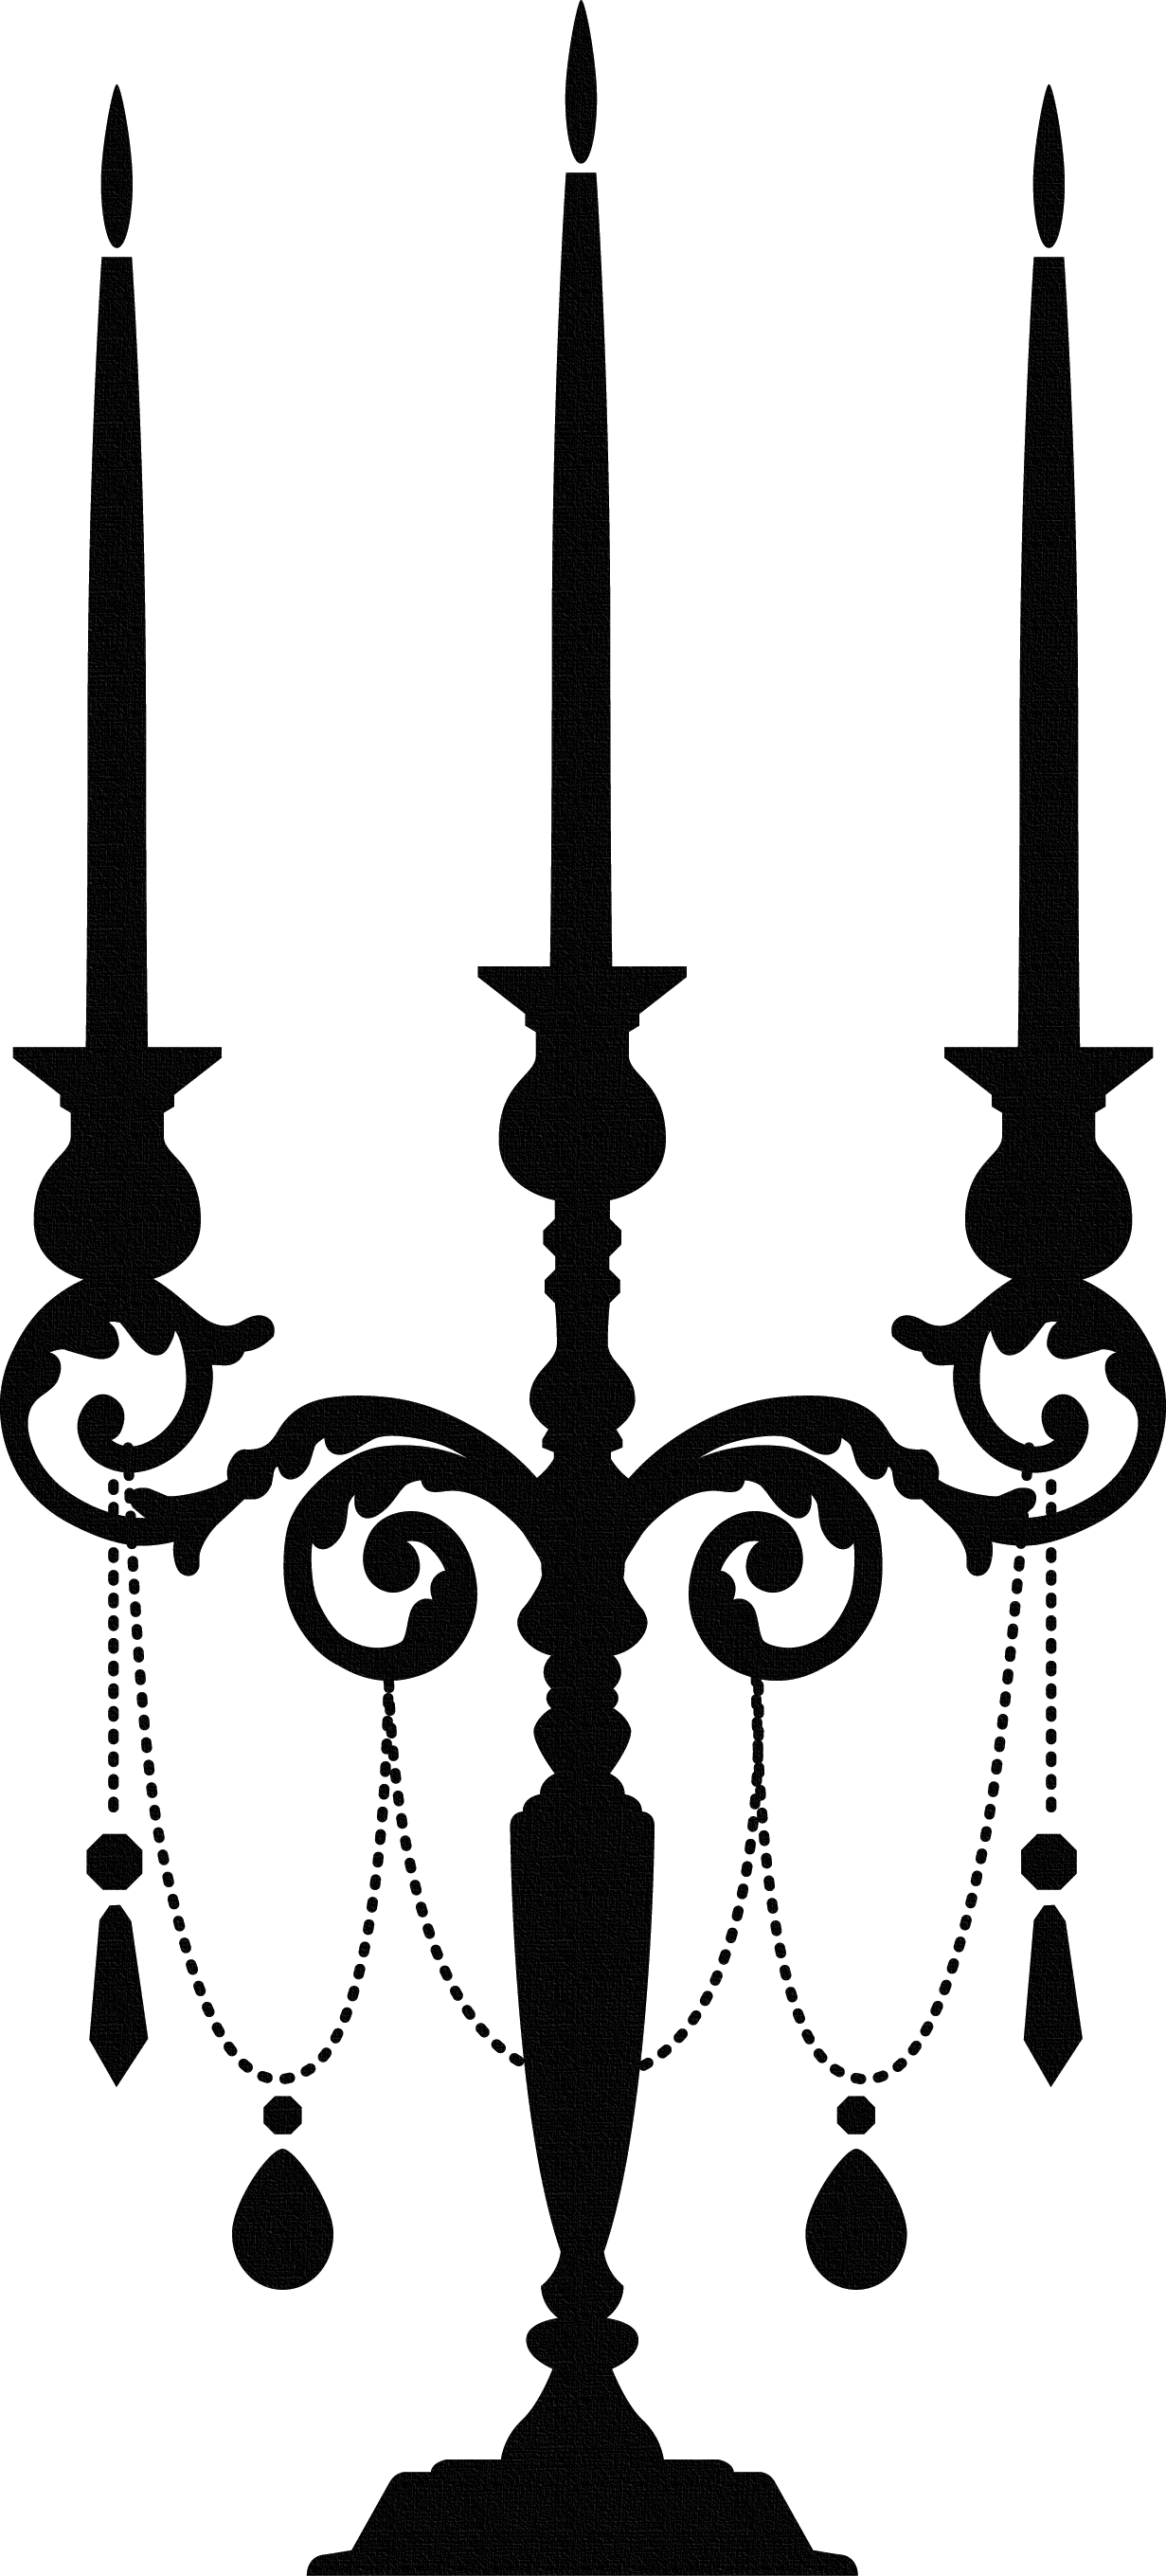 graphic free stock Png coleccion glamour inspiration. Chandelier clipart baroque.